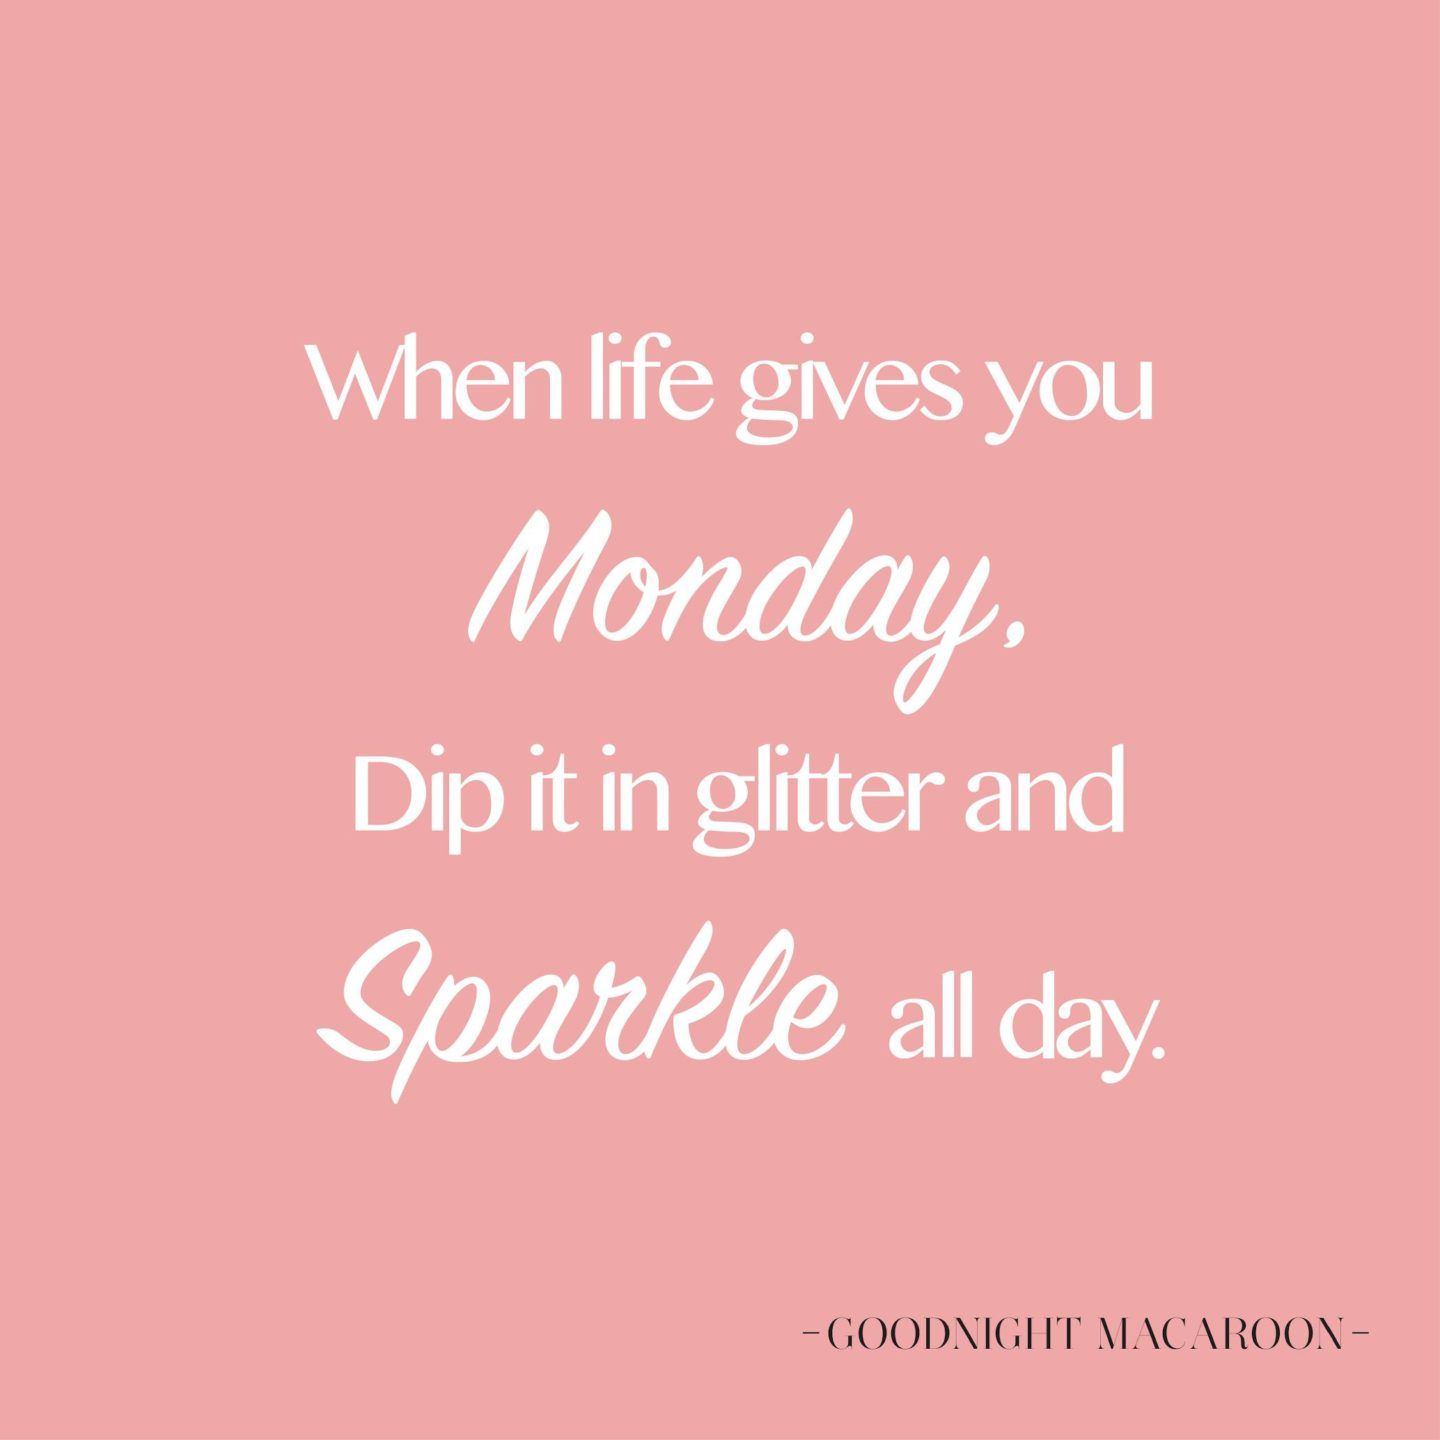 Monday Quotes mondaymotivation | Work quotes | Quotes, Monday quotes, Morning quotes Monday Quotes